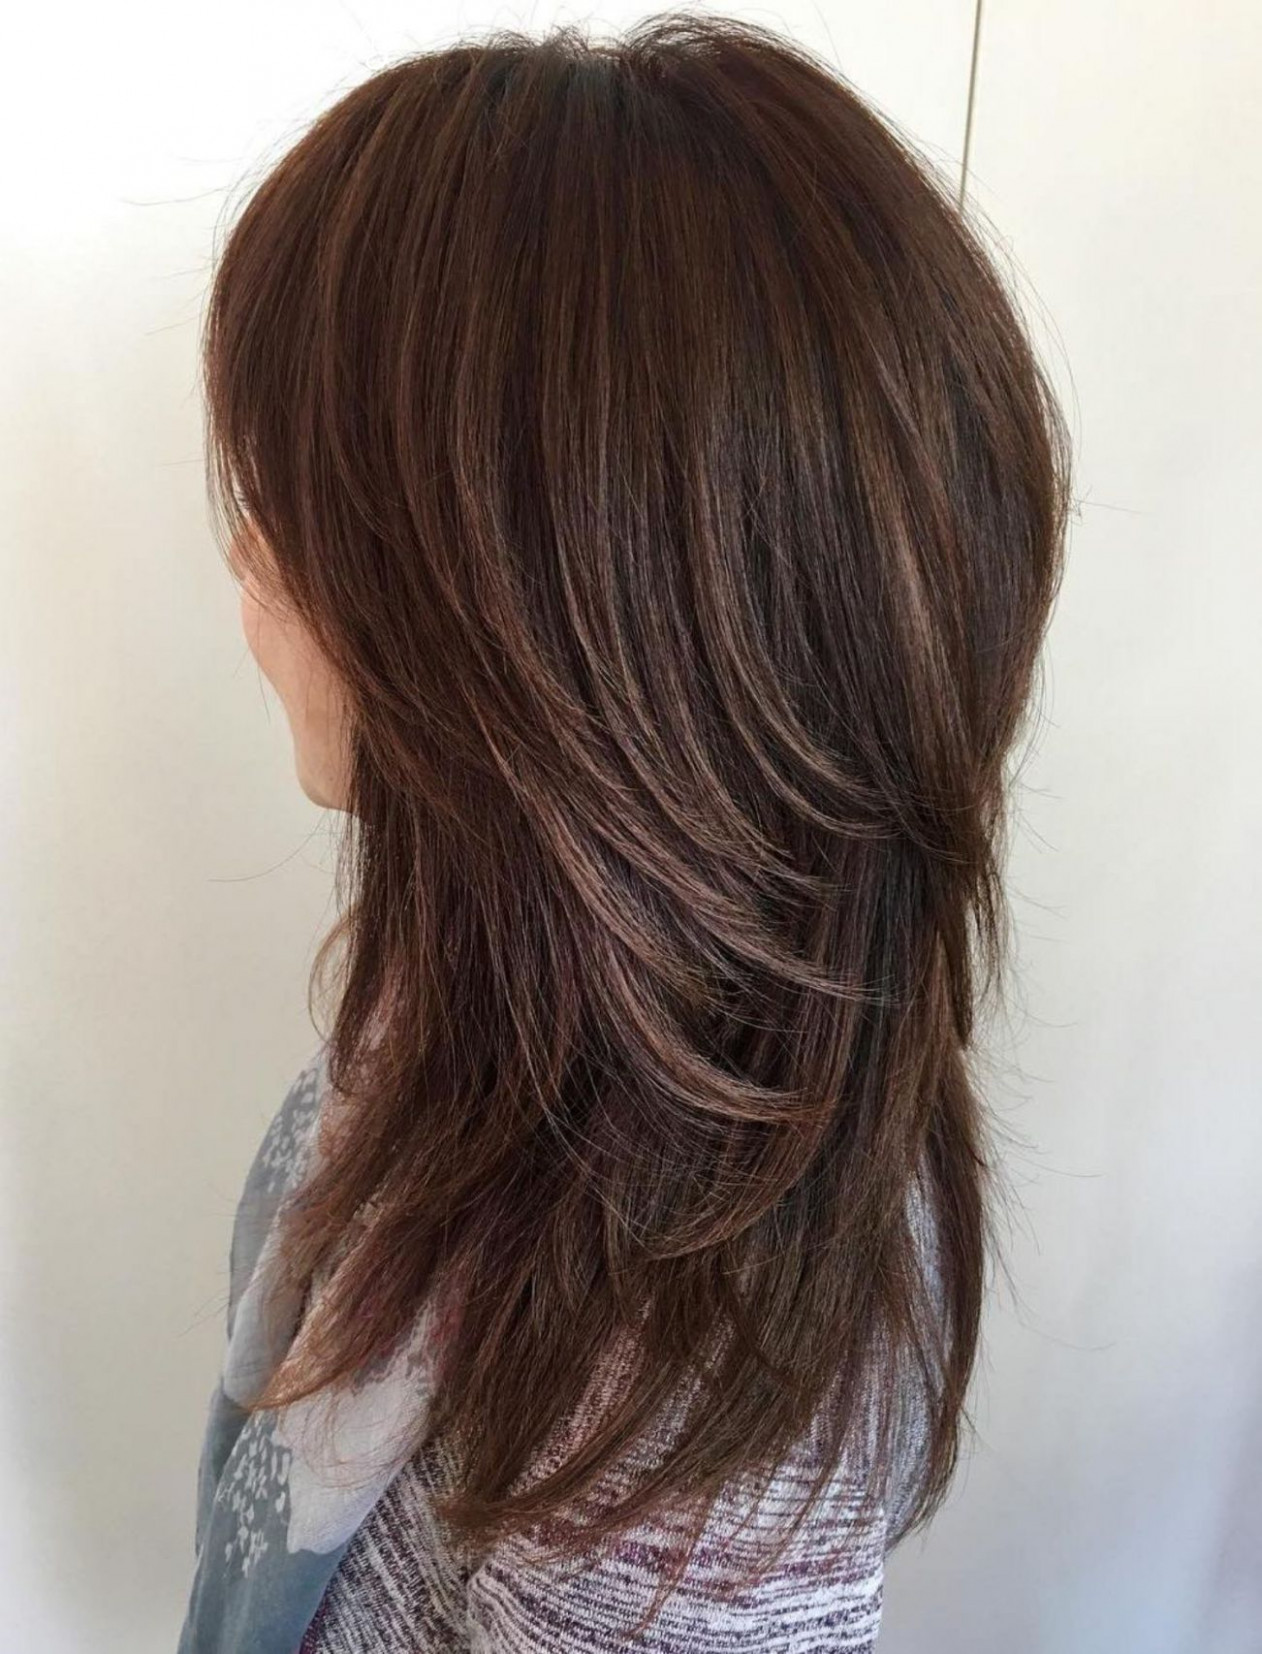 Pin on all bout hair long shaggy hairstyles 2018